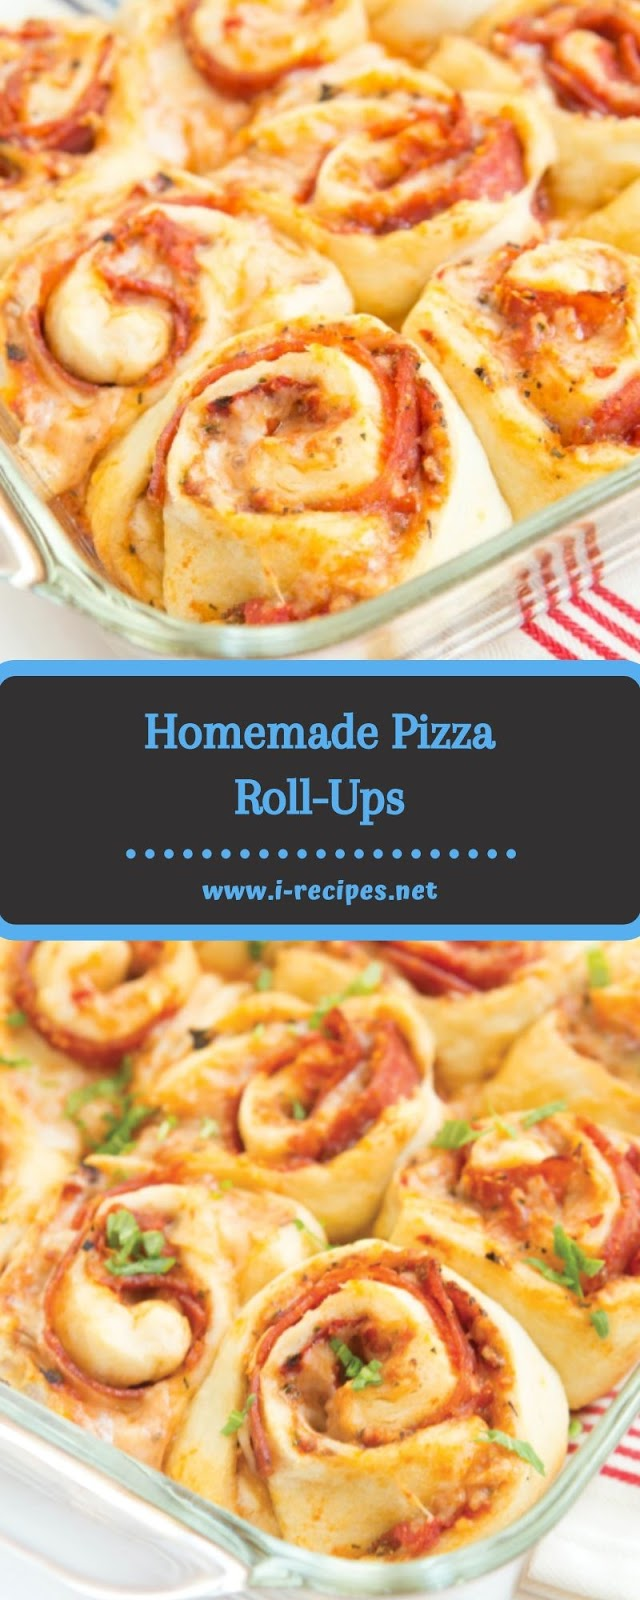 Homemade Pizza Roll-Ups